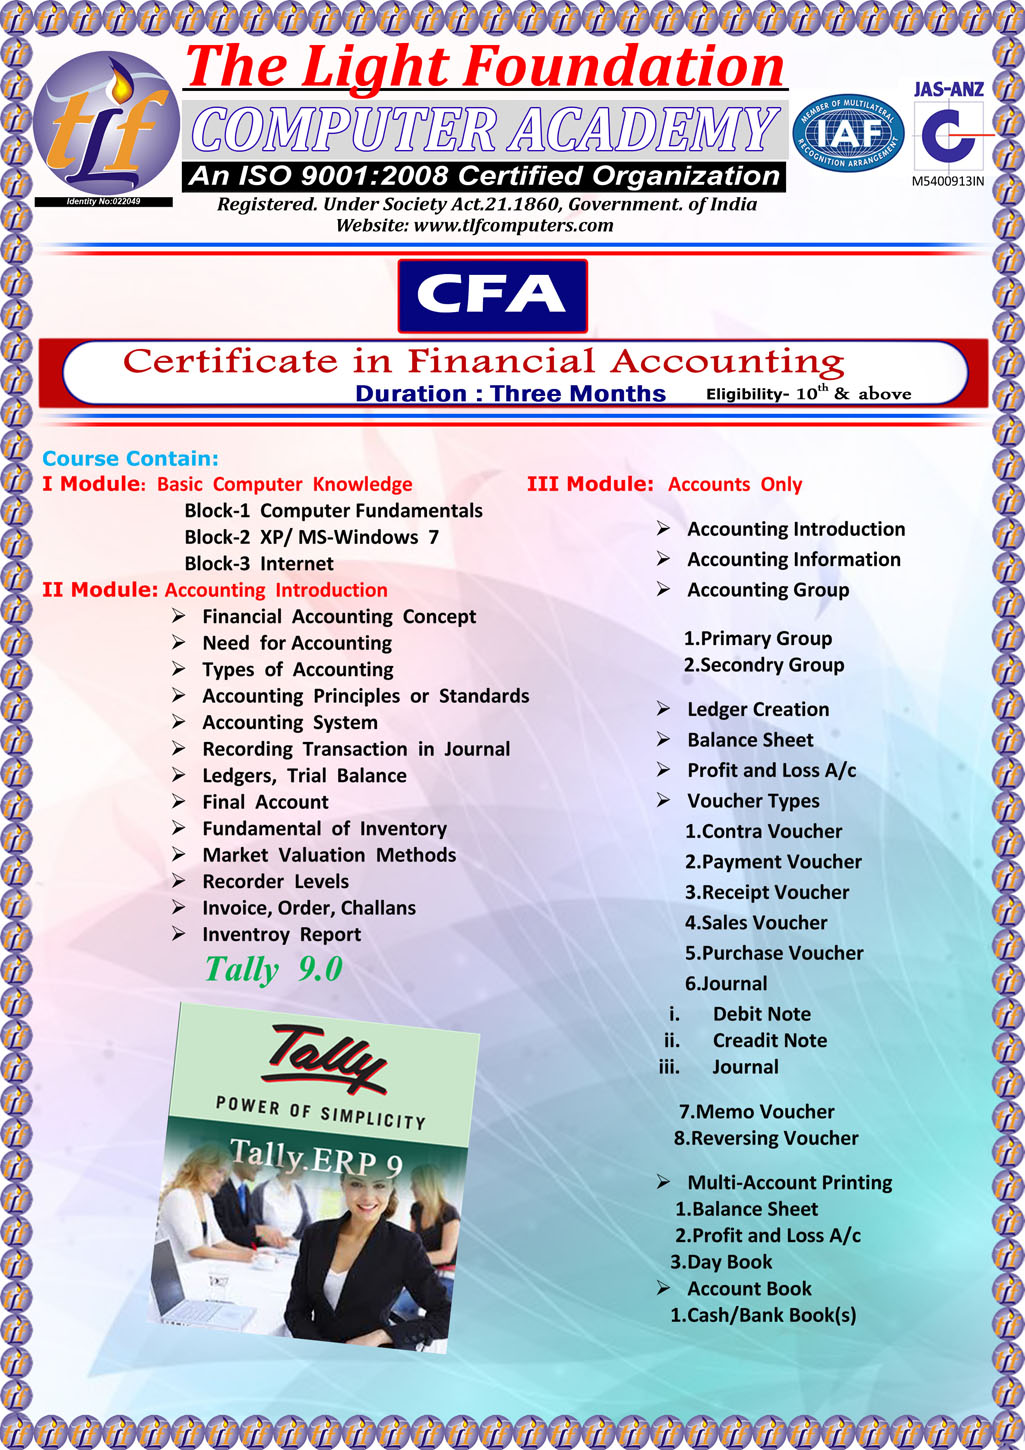 Tlf Computers Courses Certificate In Financial Accountingcfa